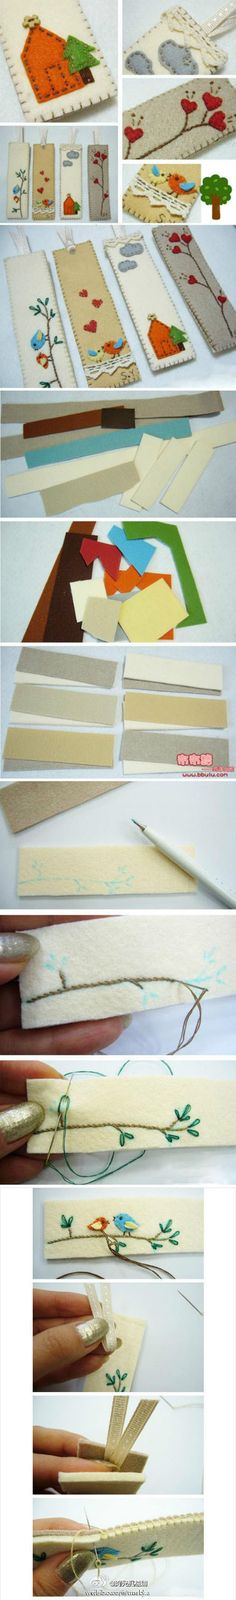 bookmarks....if only I had talent....these are adorable!!  Instructions look step by step - but written in Japanese (?)